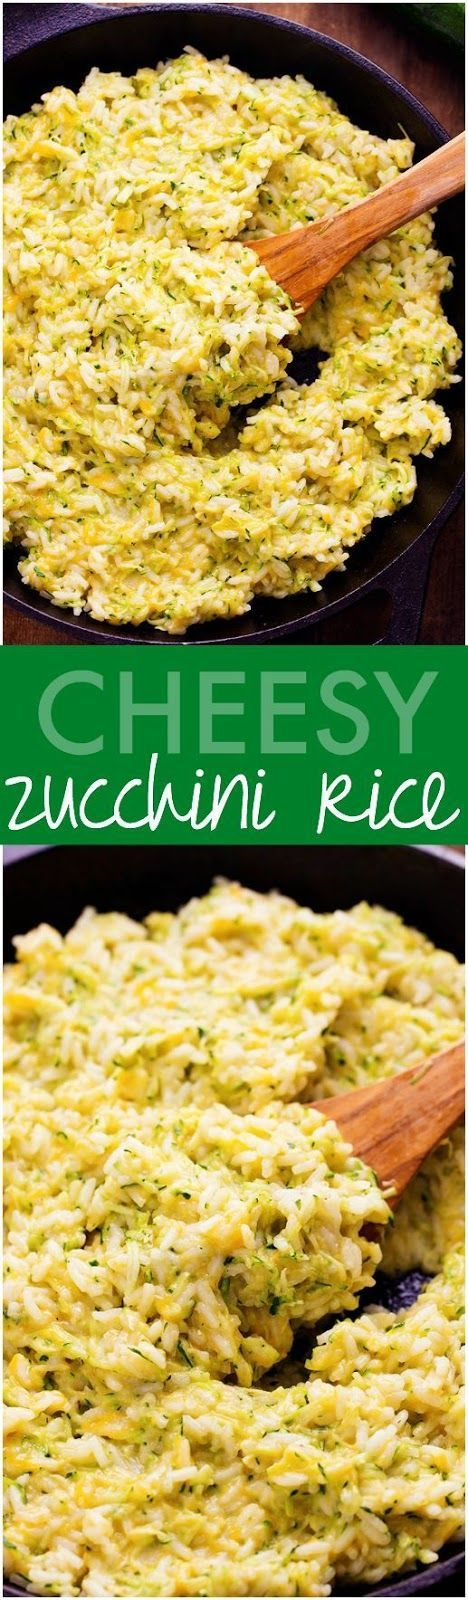 Cheesy Zucchini Rice: